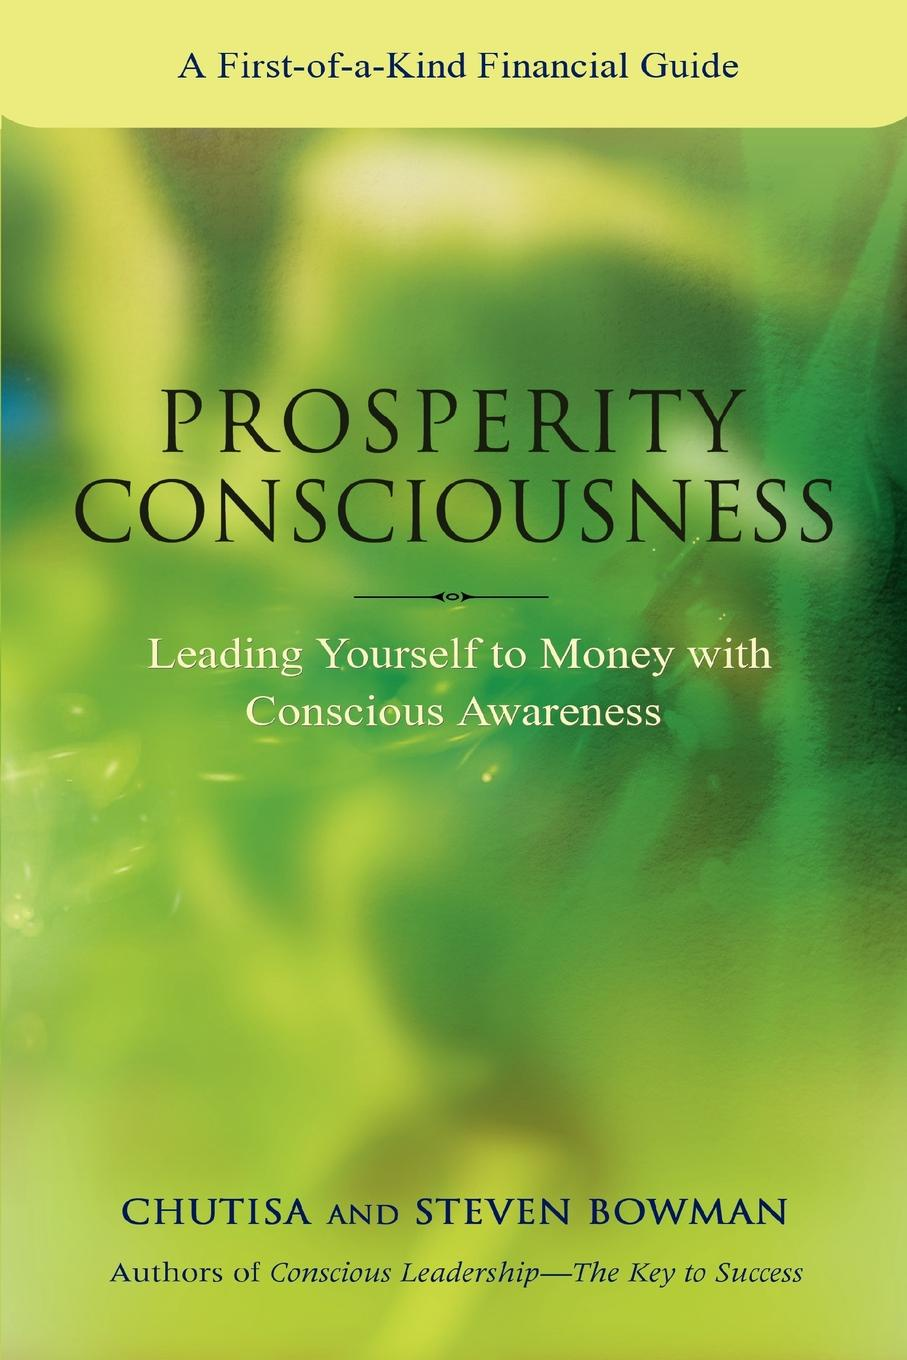 Steven Bowman Prosperity Consciousness. Leading Yourself to Money with Conscious Awareness paul muolo $700 billion bailout the emergency economic stabilization act and what it means to you your money your mortgage and your taxes